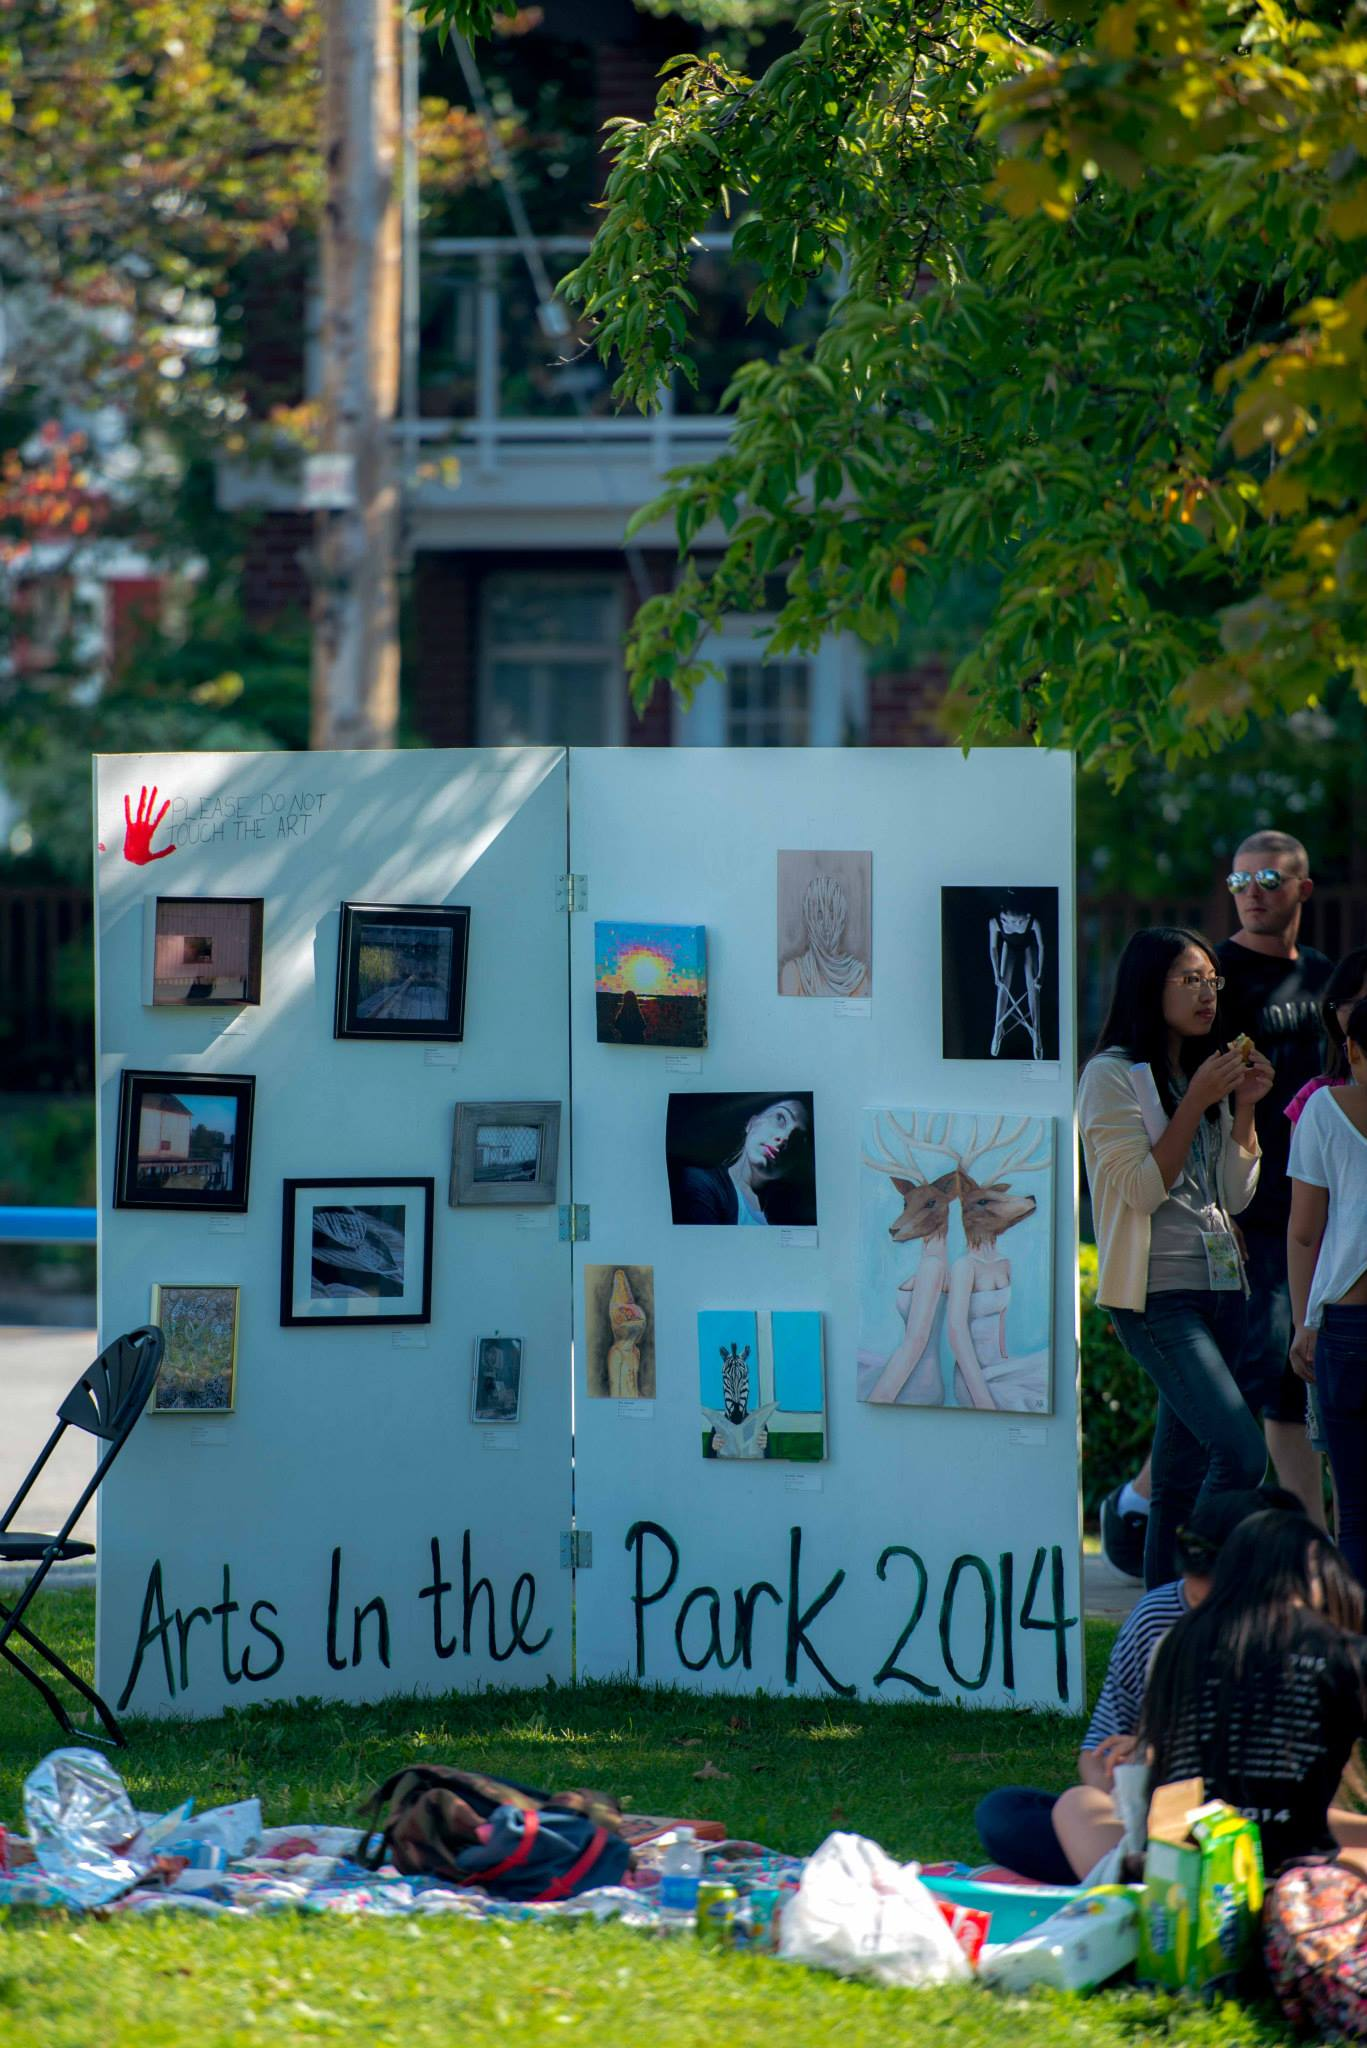 Arts in the Park 2014 Visual Arts Display curated by Emily May. (Photo by Rammy Fong)